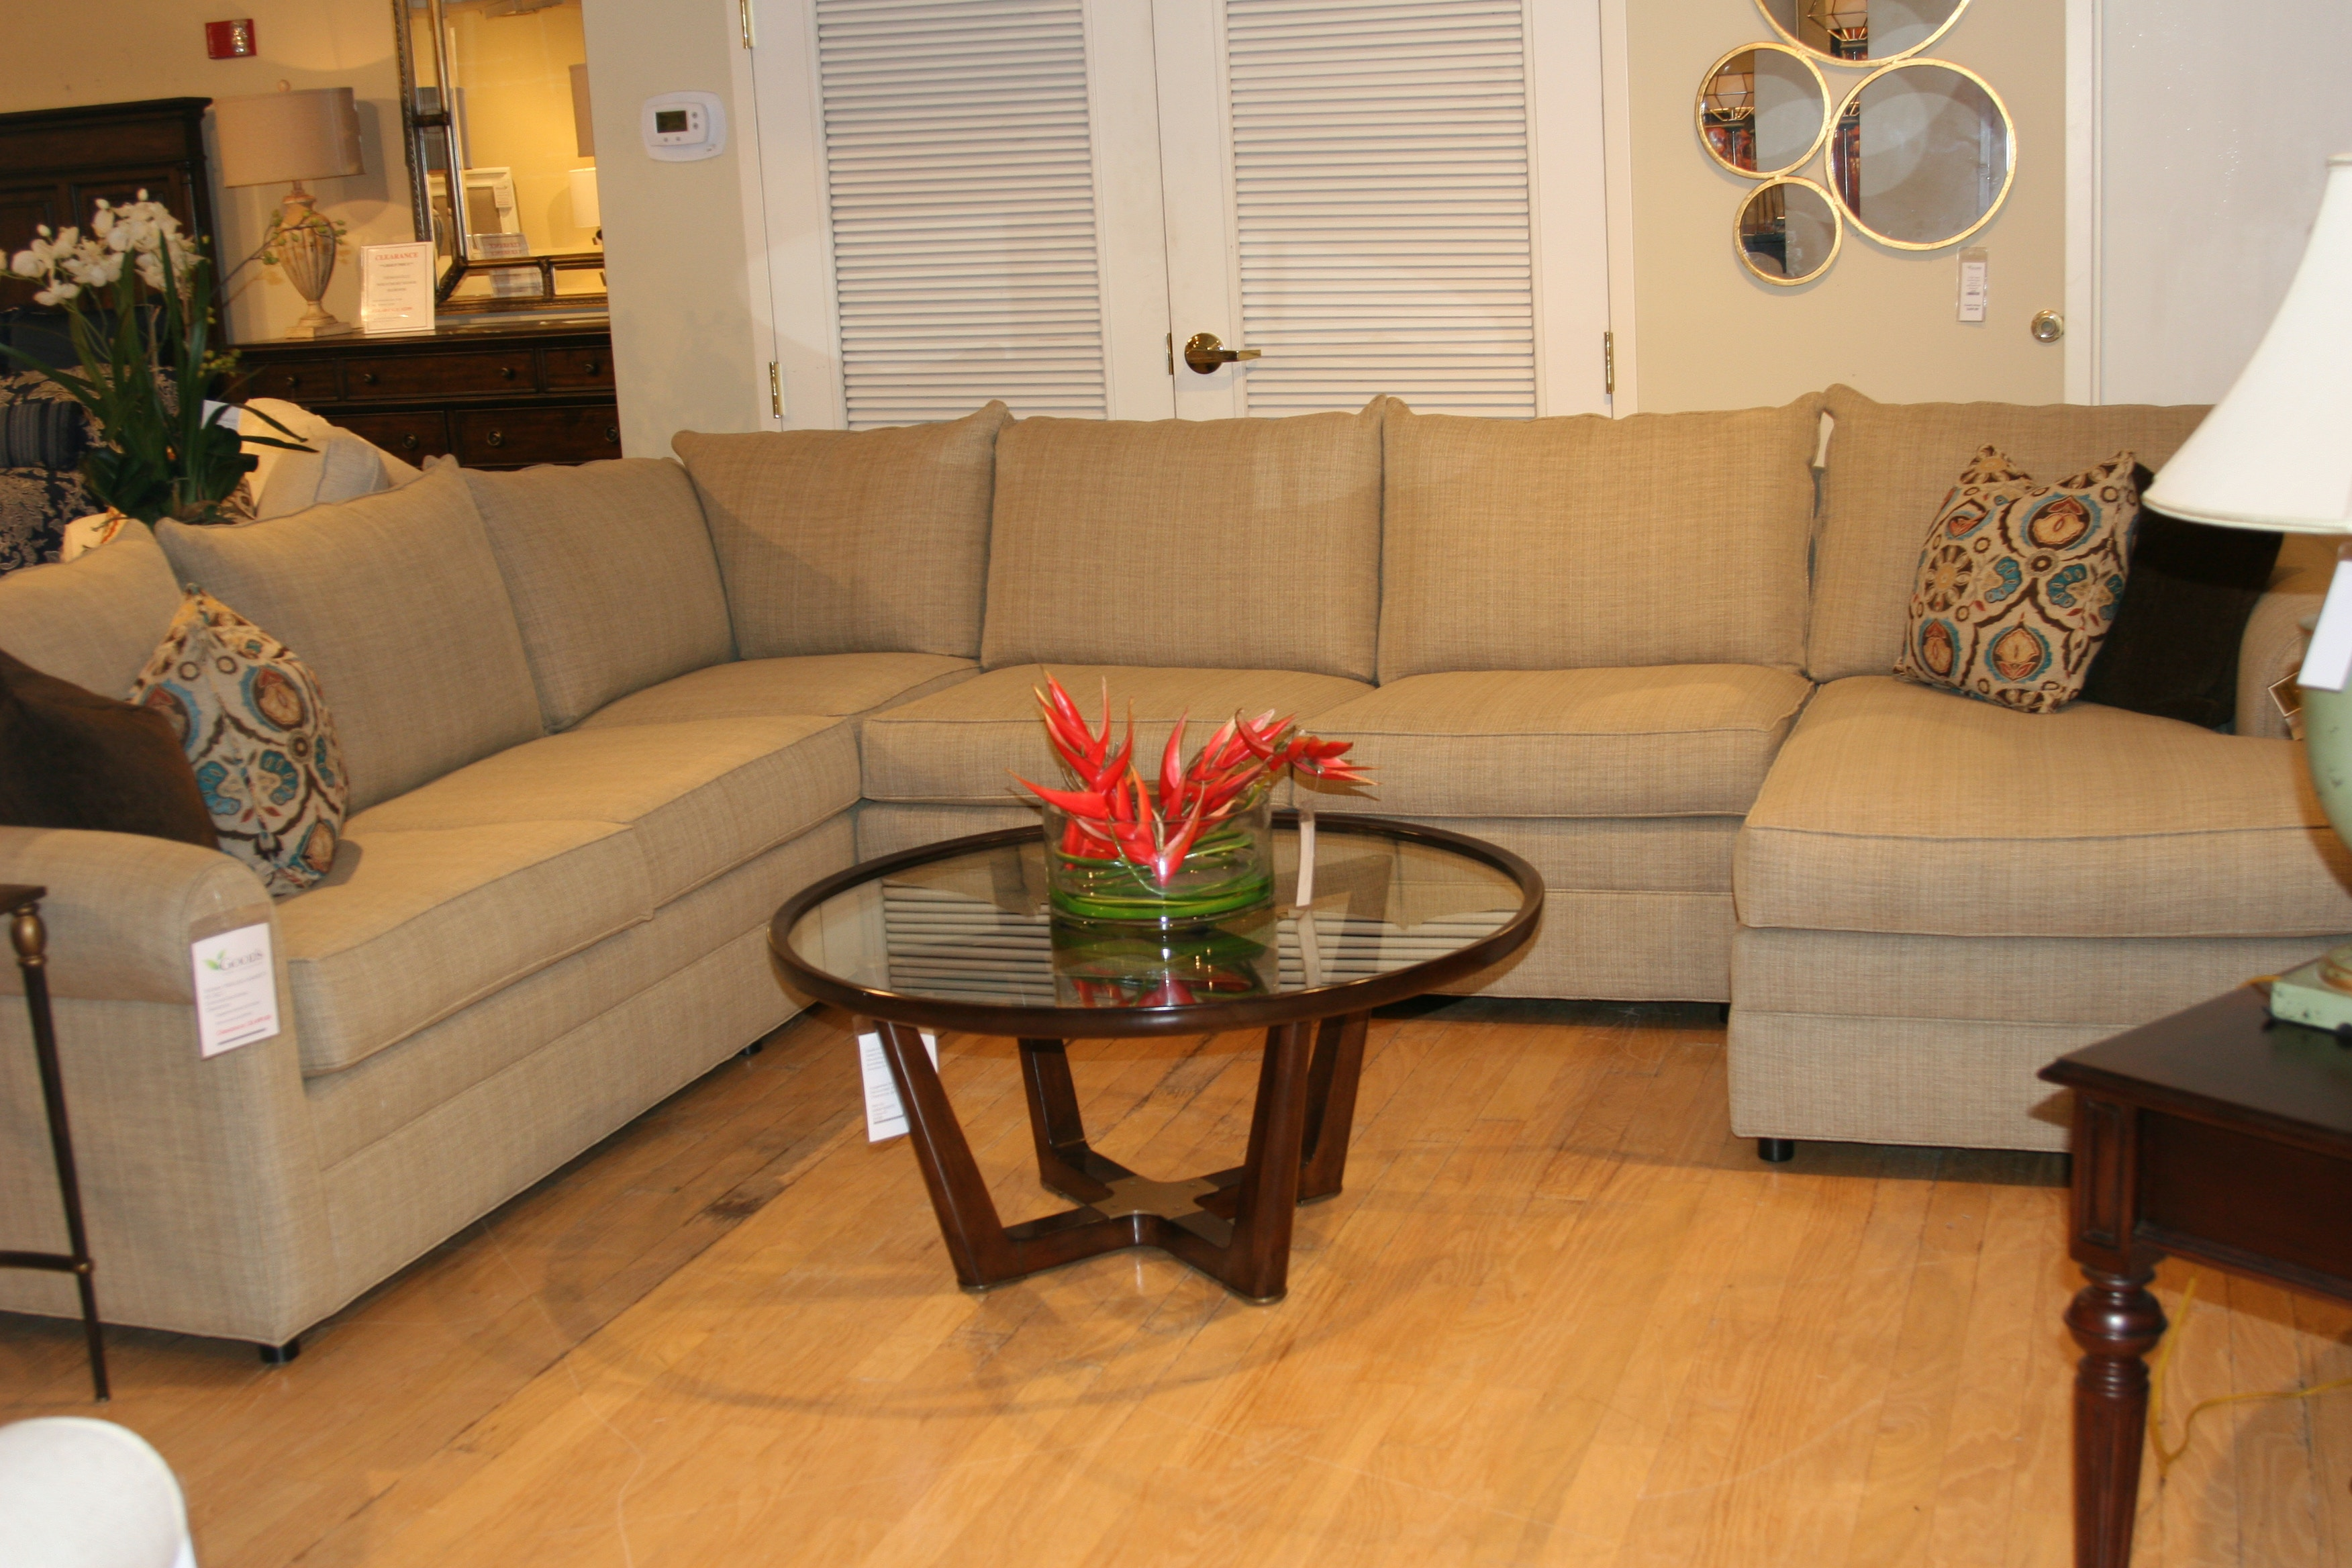 1903 L23C/A24/R27 Clearance. Concord 3 Piece Sectional By Thomasville  Furniture